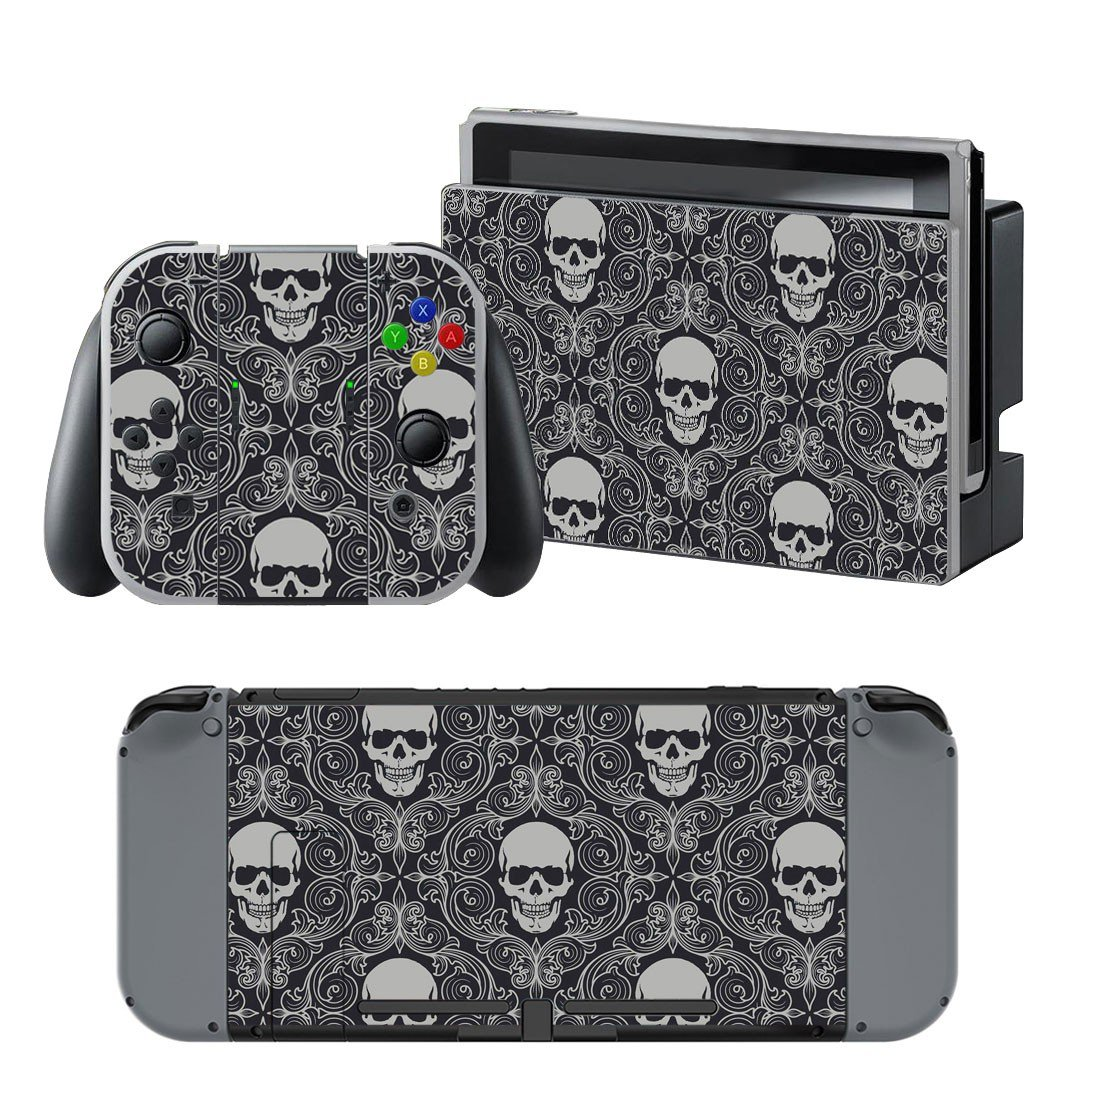 Colorless Skulls design decal for Nintendo switch console sticker skin